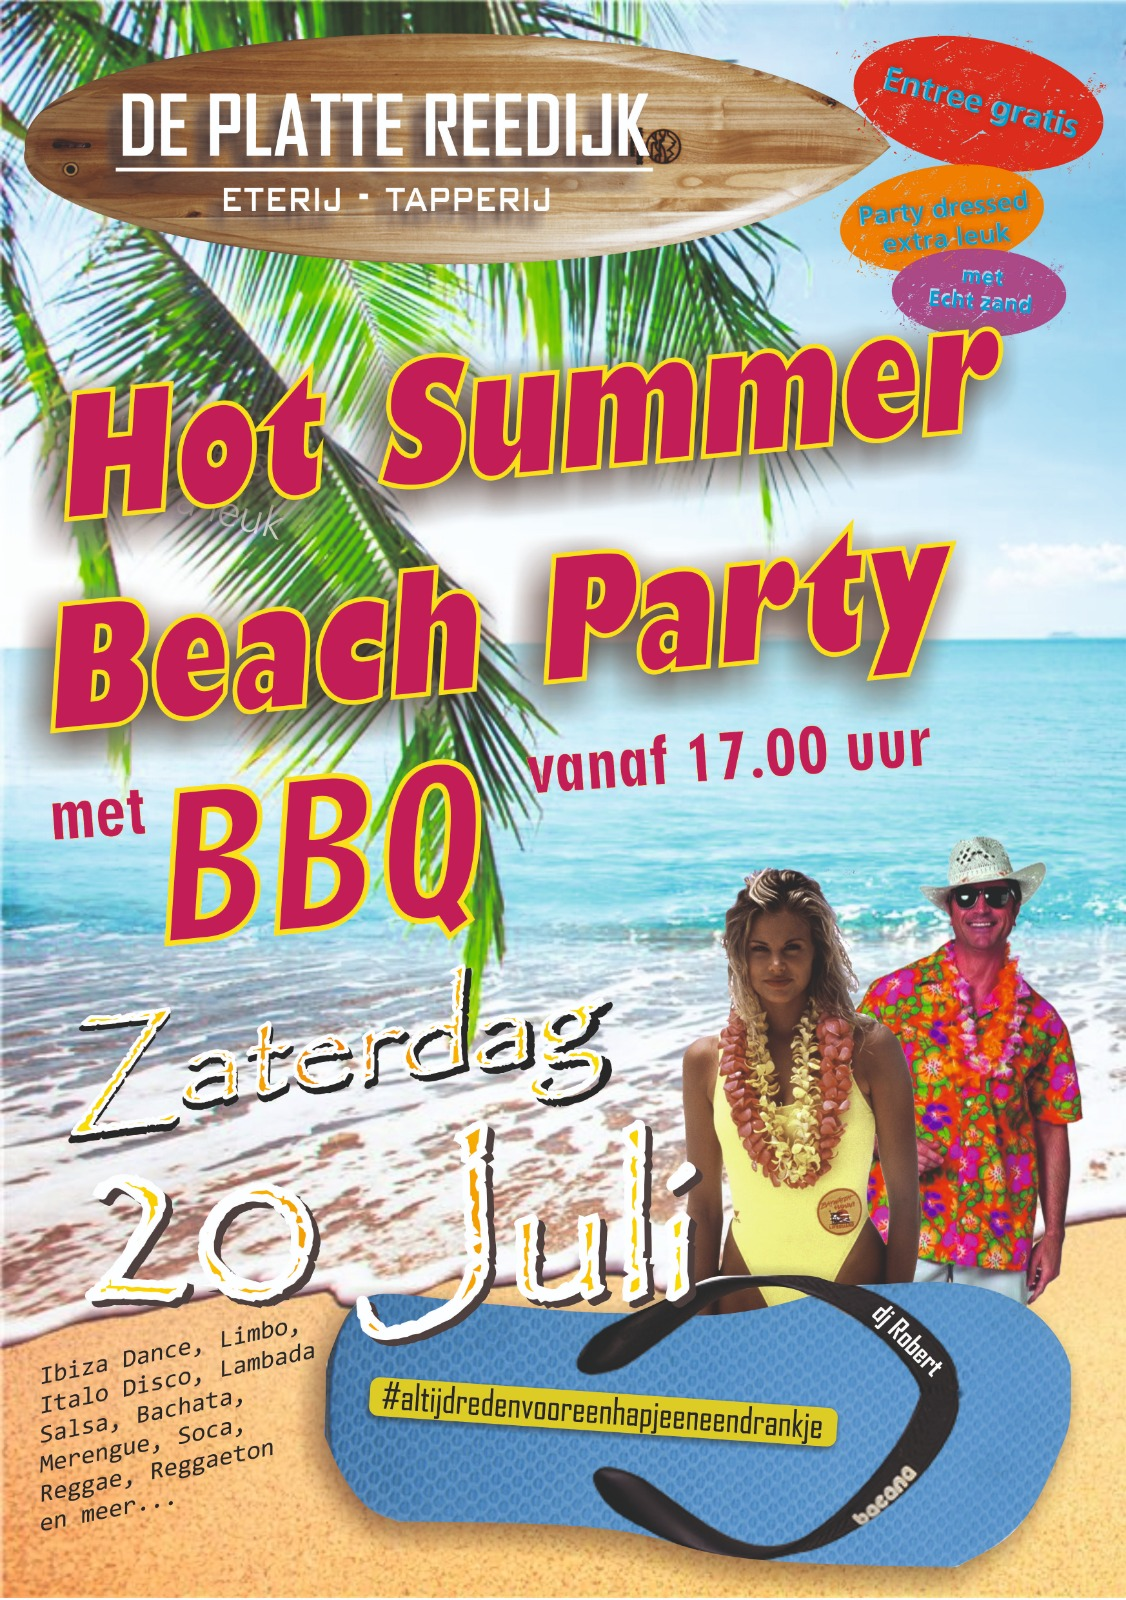 Summer beach party @deplattereedijk